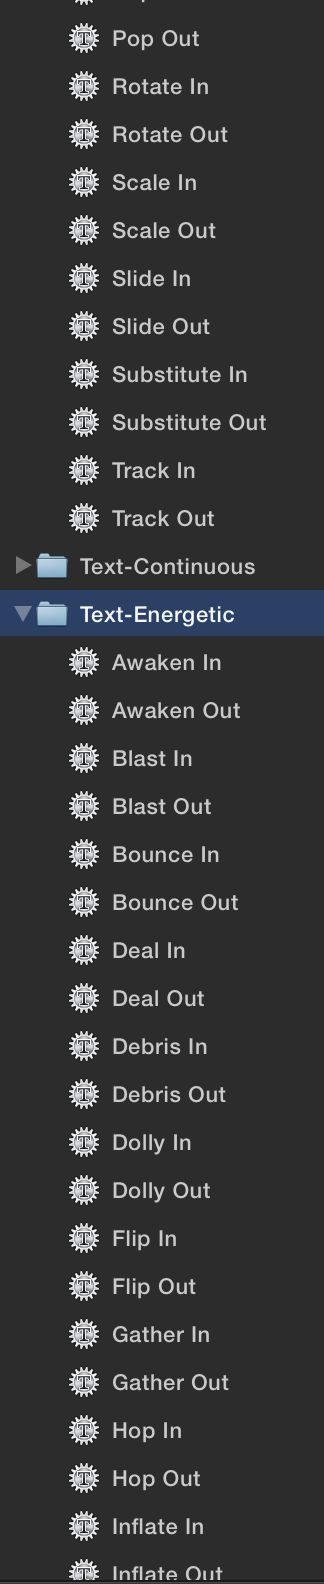 So many presets, all from Sequence Text.